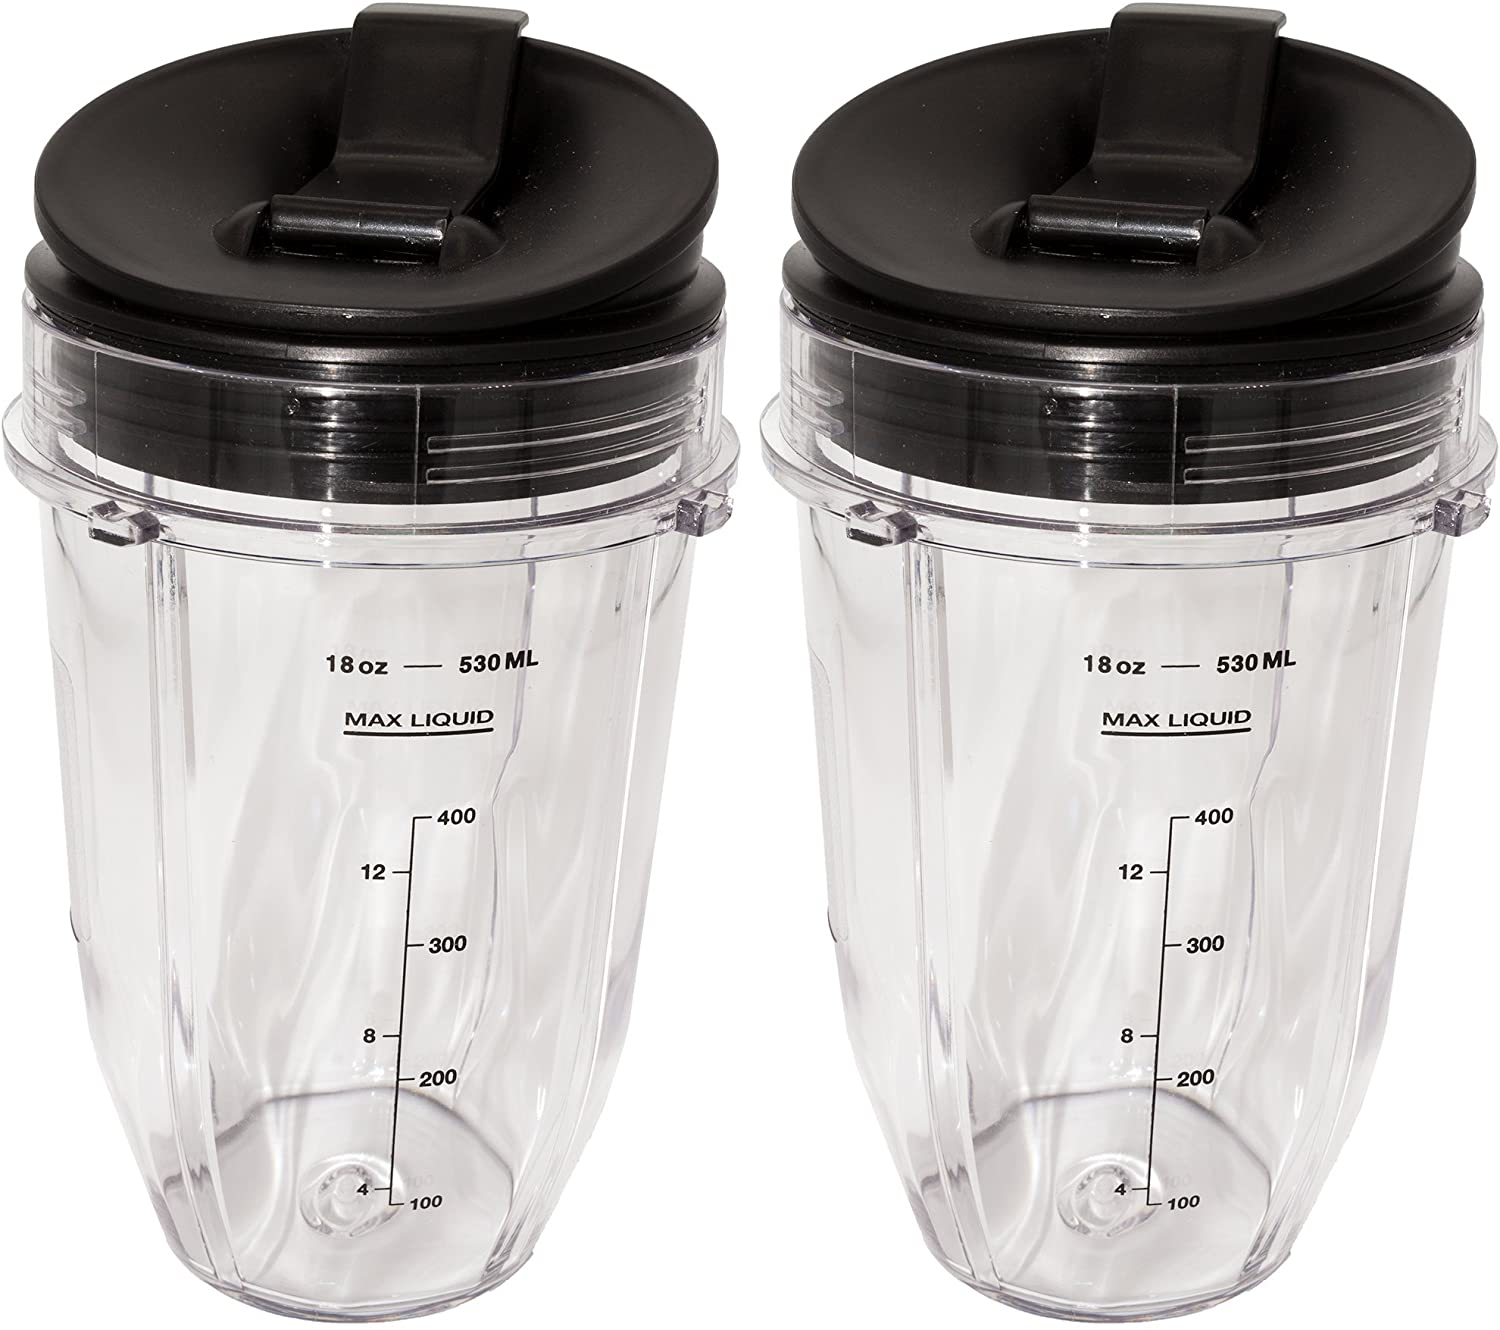 Blendin 2 Pack Small 18 Ounce Cup with Sip N Seal Flip Lids, Compatible with Nutri Ninja Auto-iQ 1000w Series and Duo Blenders